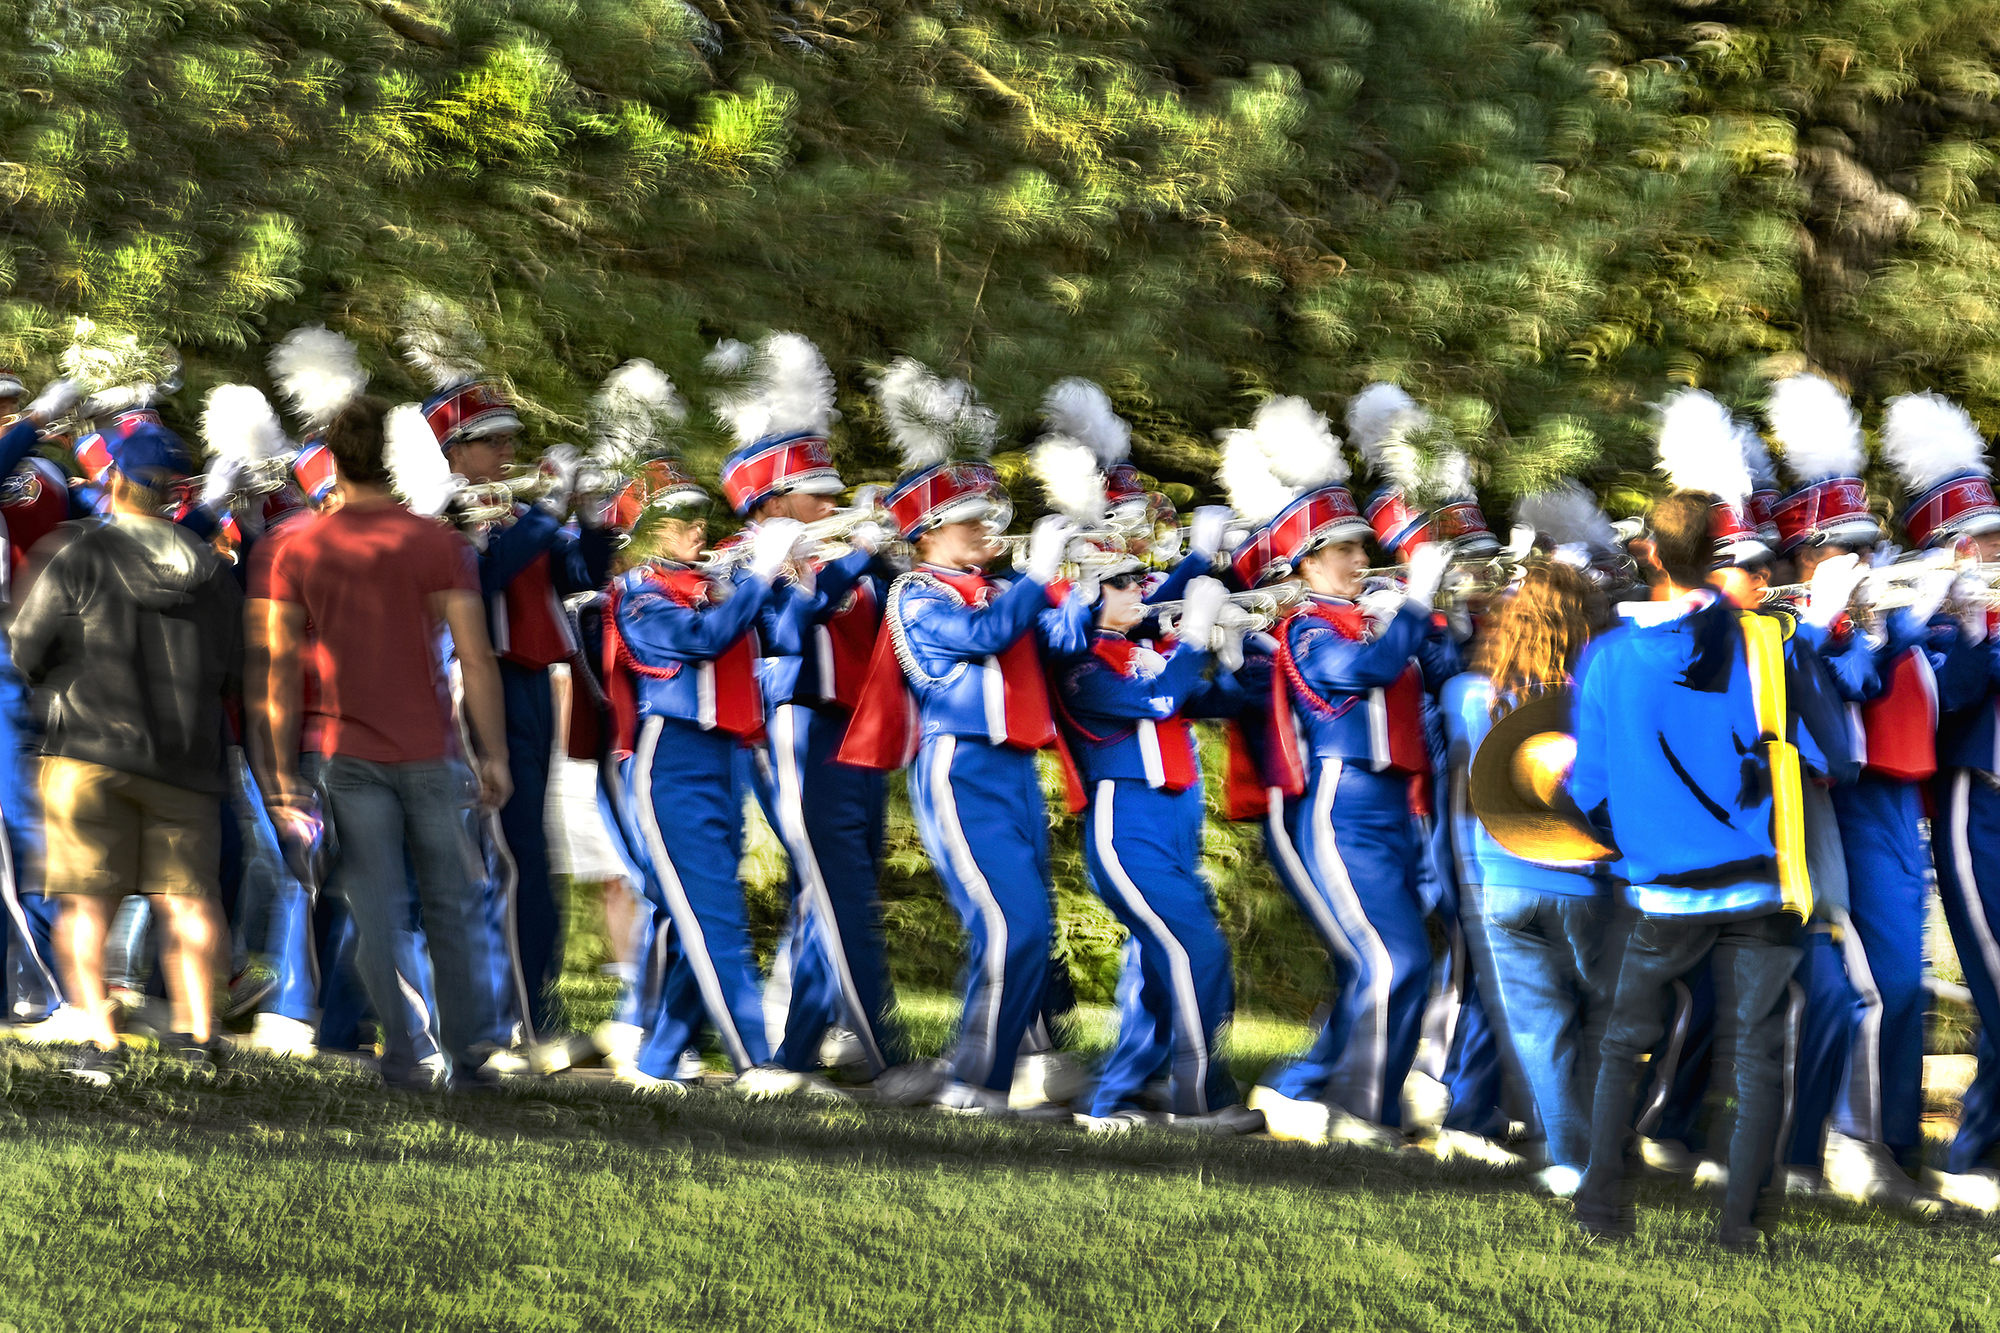 The Marching Jayhawks